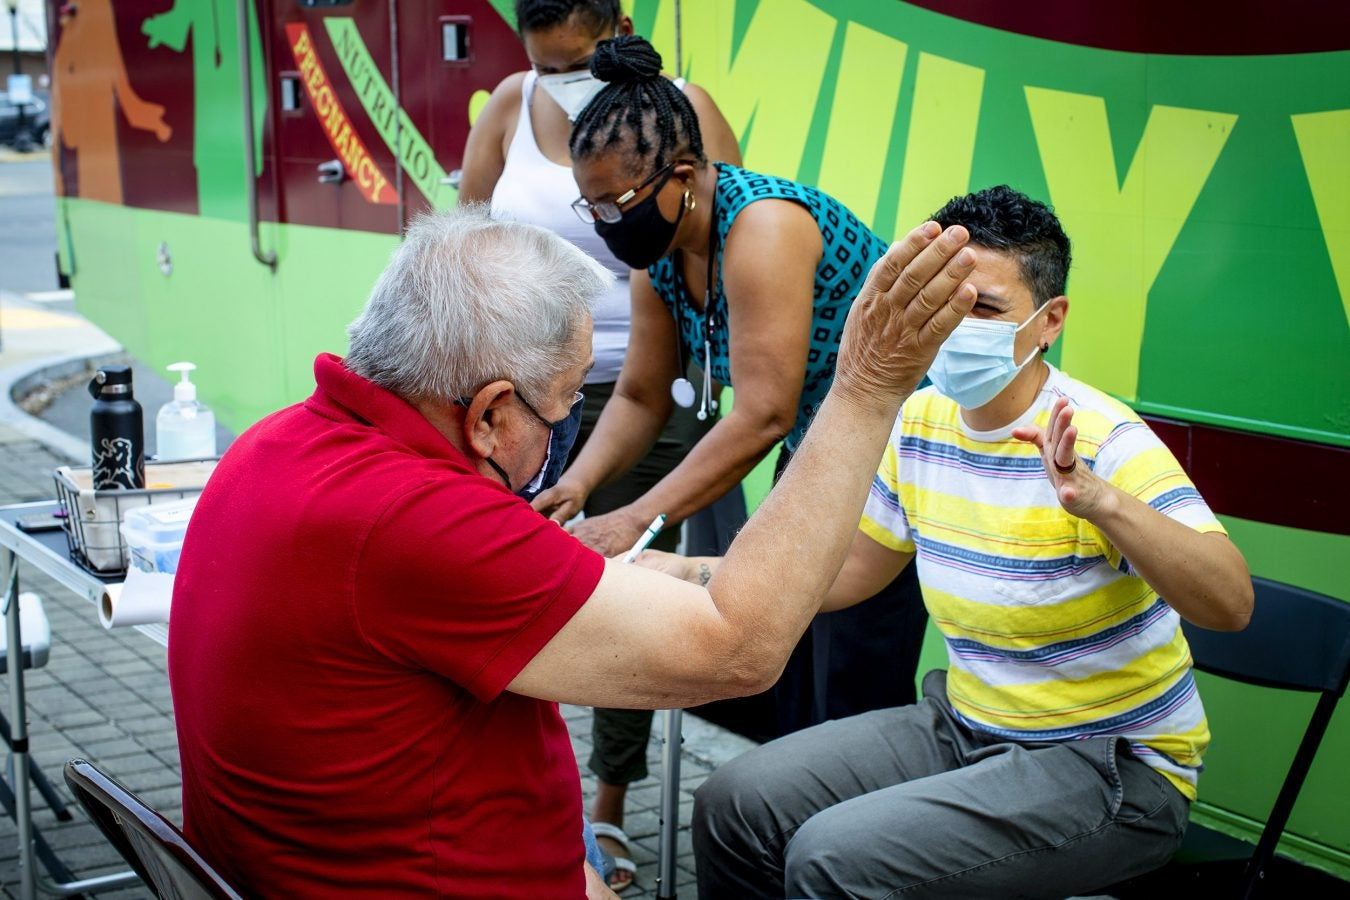 Simone de Oliveira, right, high fives a regular client, Joseph Rocca, of Winthrop, after administering his blood pressure test.